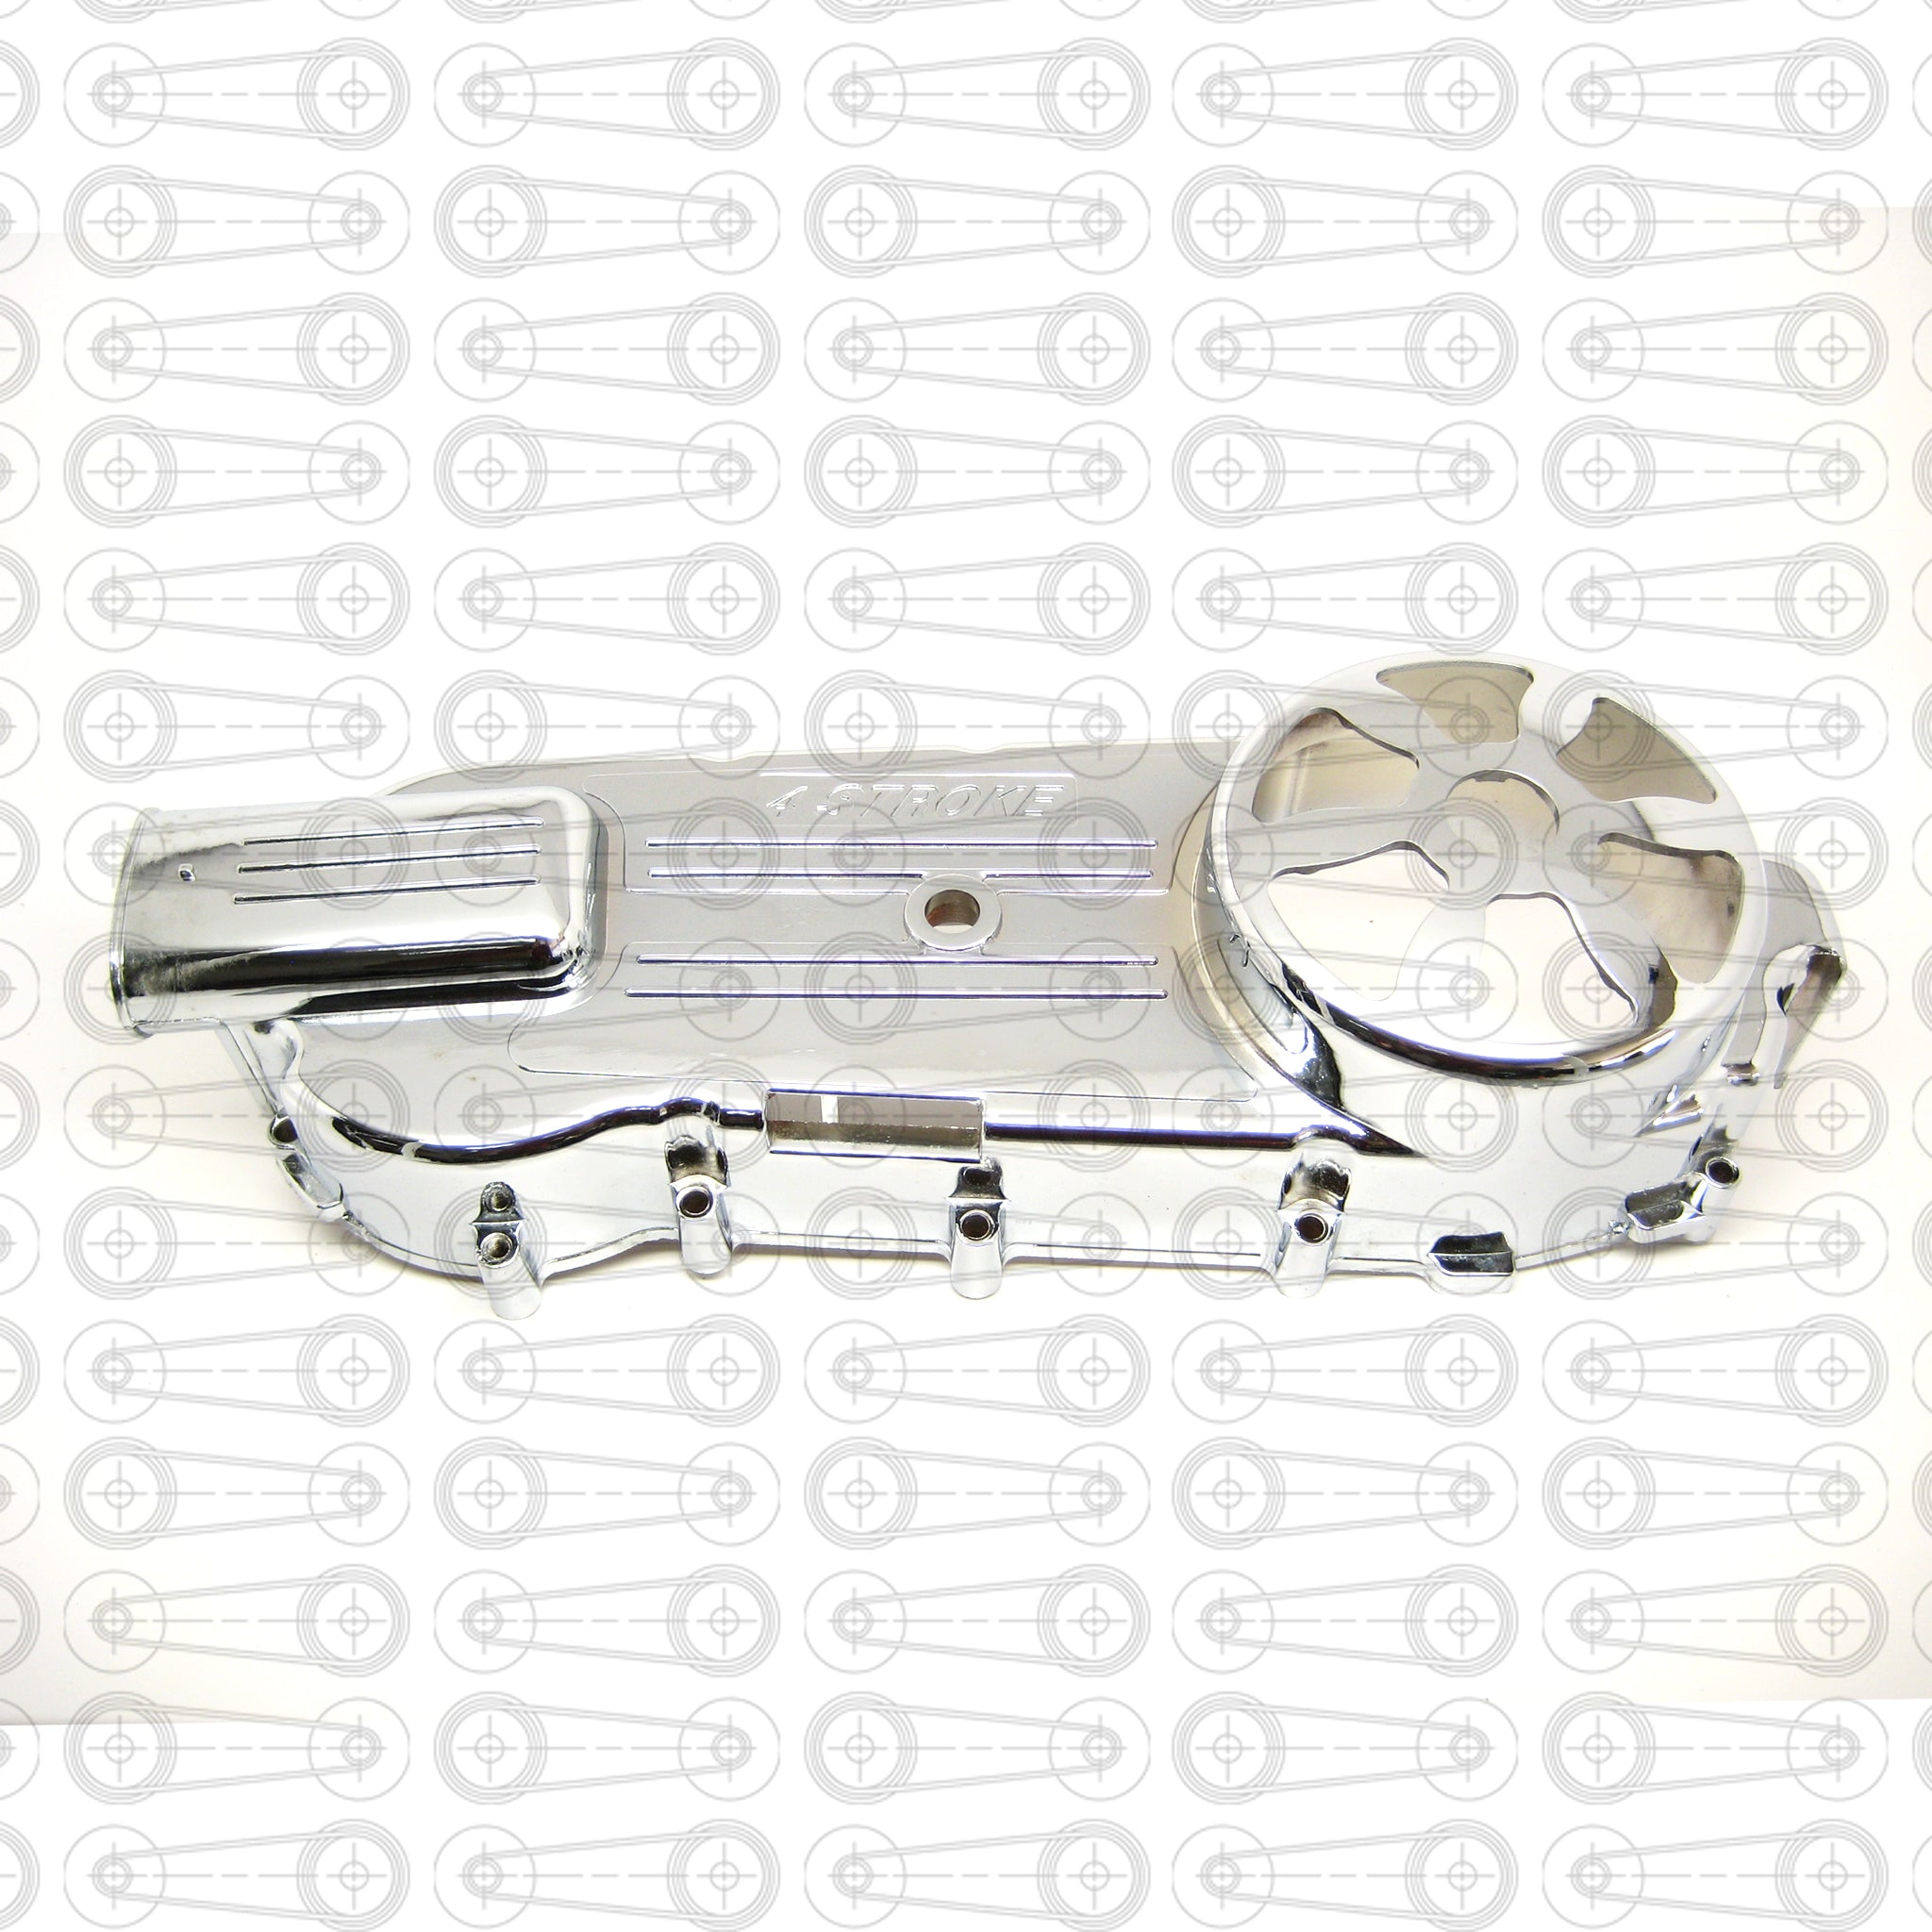 CHROME - VENTED LONG CASE CVT COVER (GY6)